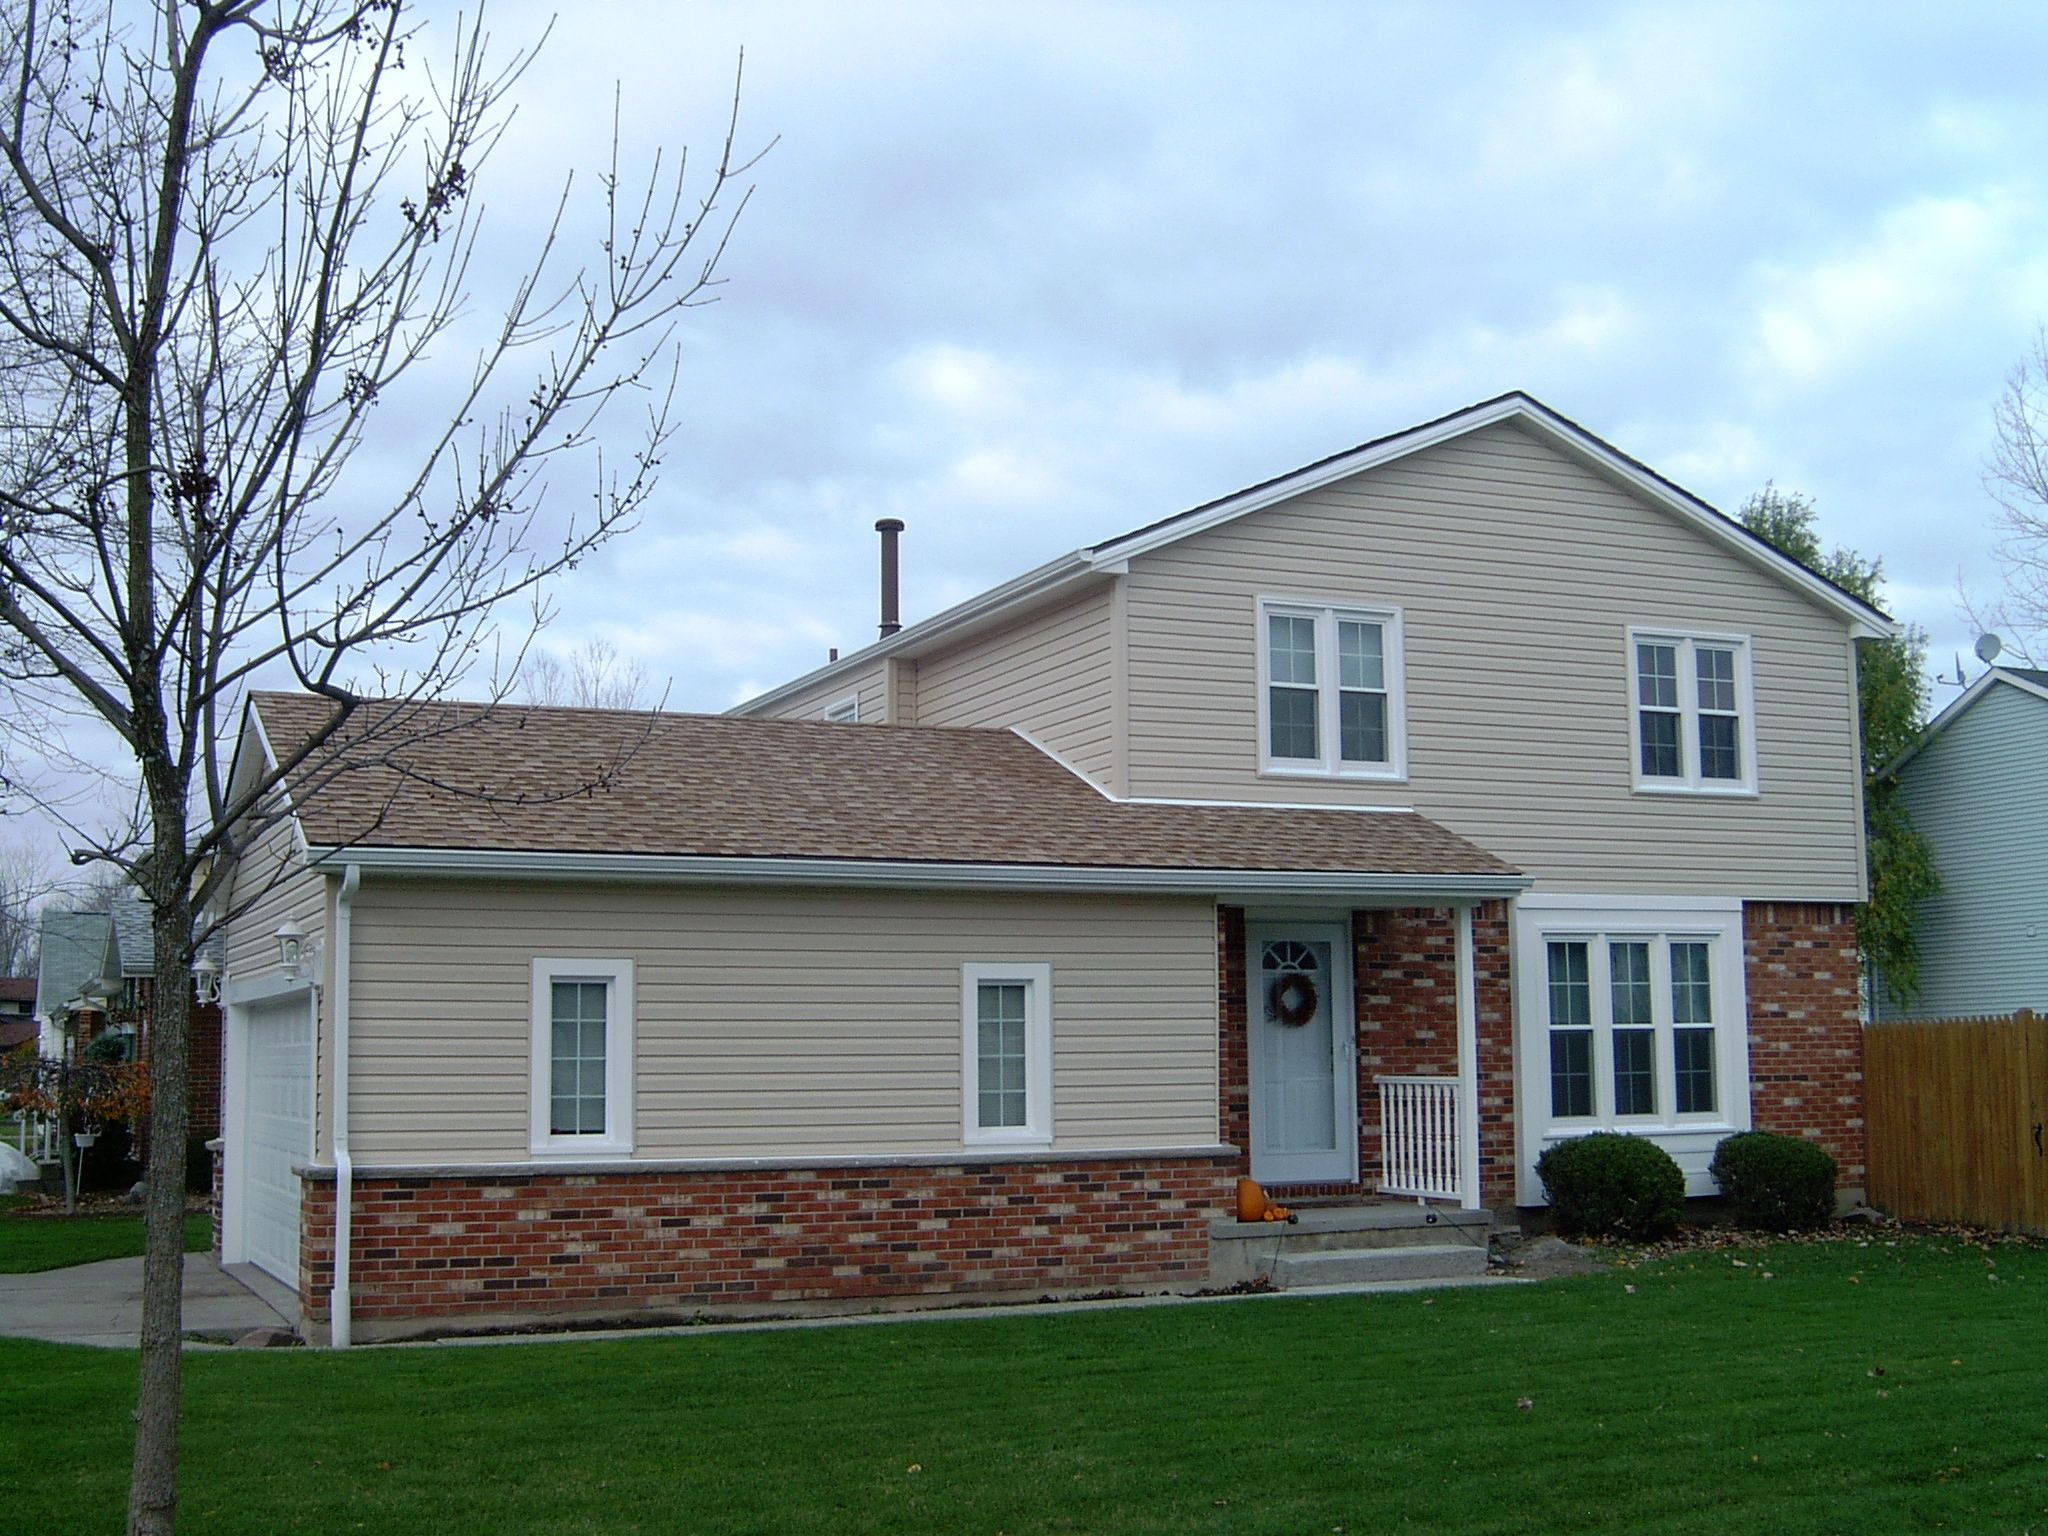 Exterior paint schemes for brown roofs - Home Stuff Pinterest Brown Roofs Yellow And Brown